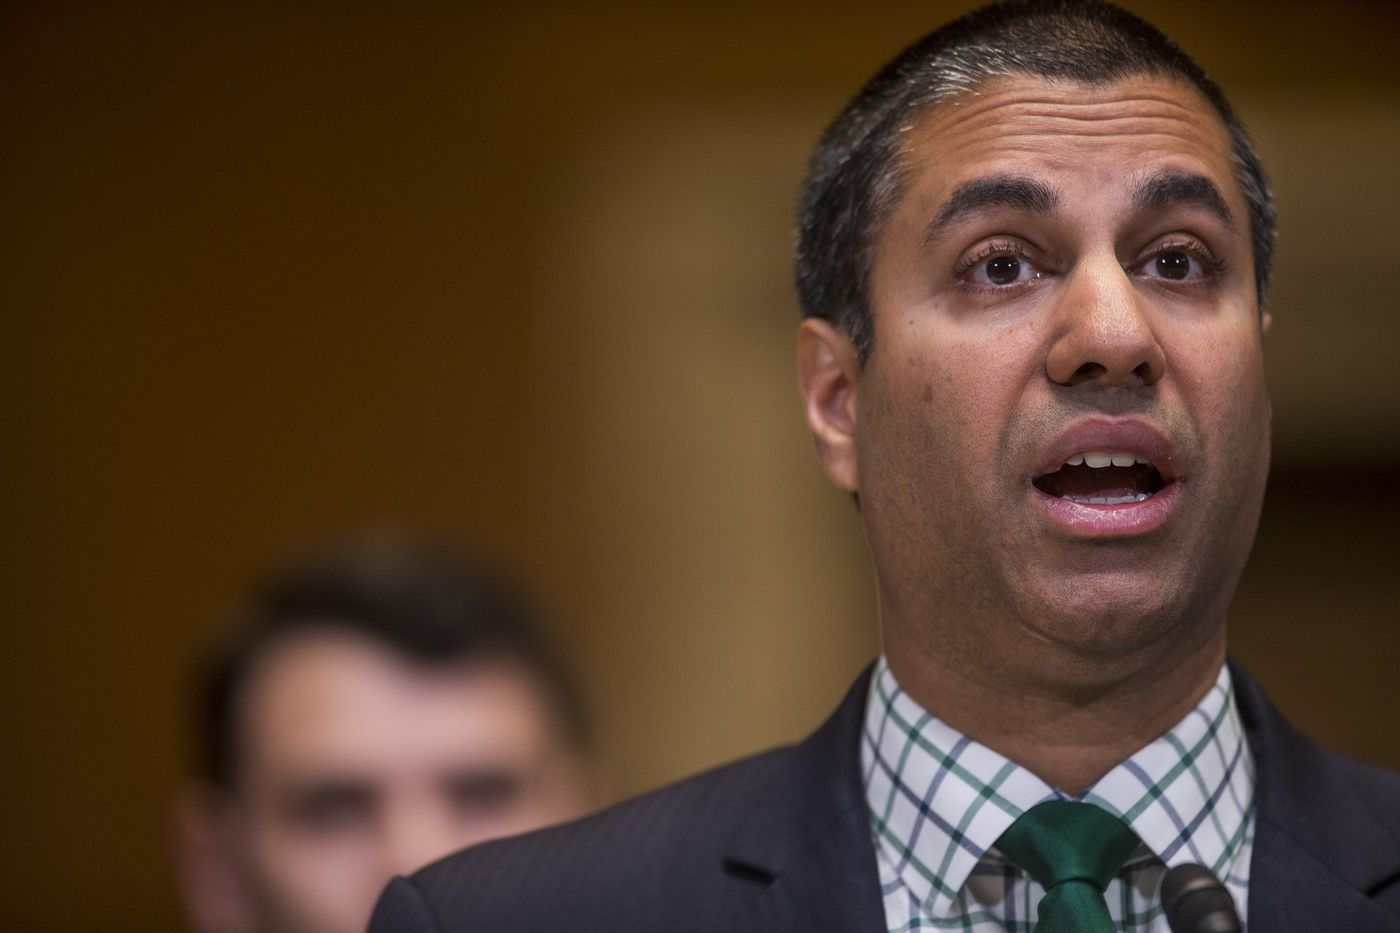 'I don't think consumers are going to see any change at all,' FCC Chairman Pai says of net neutrality repeal